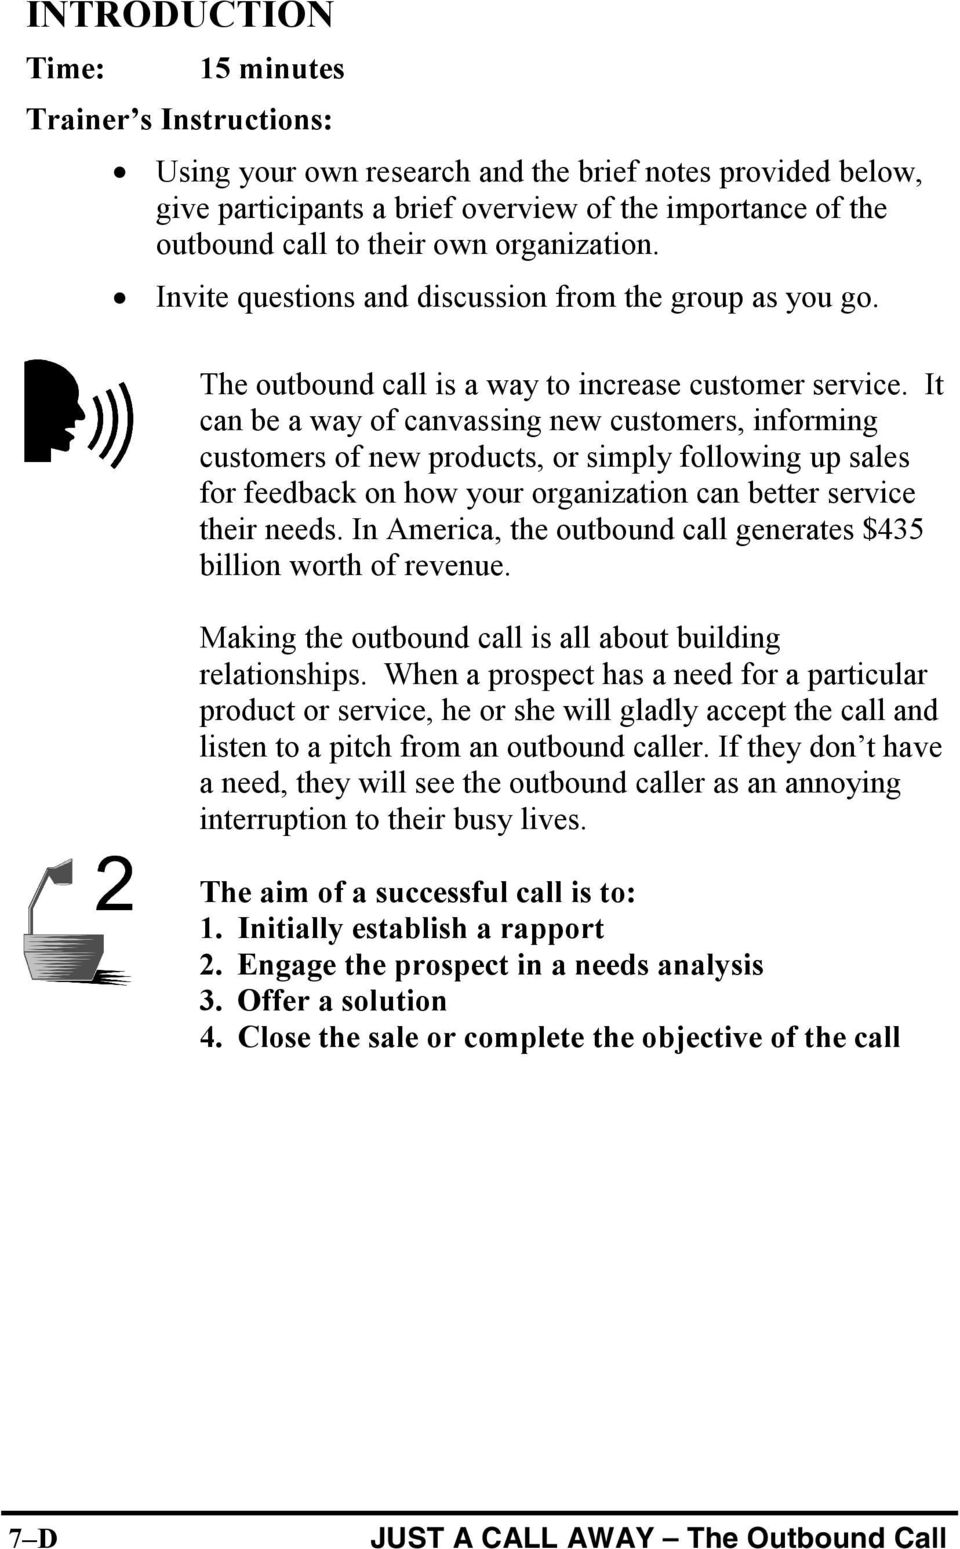 TRAINING LEADER S GUIDE JUST A CALL AWAY - PDF